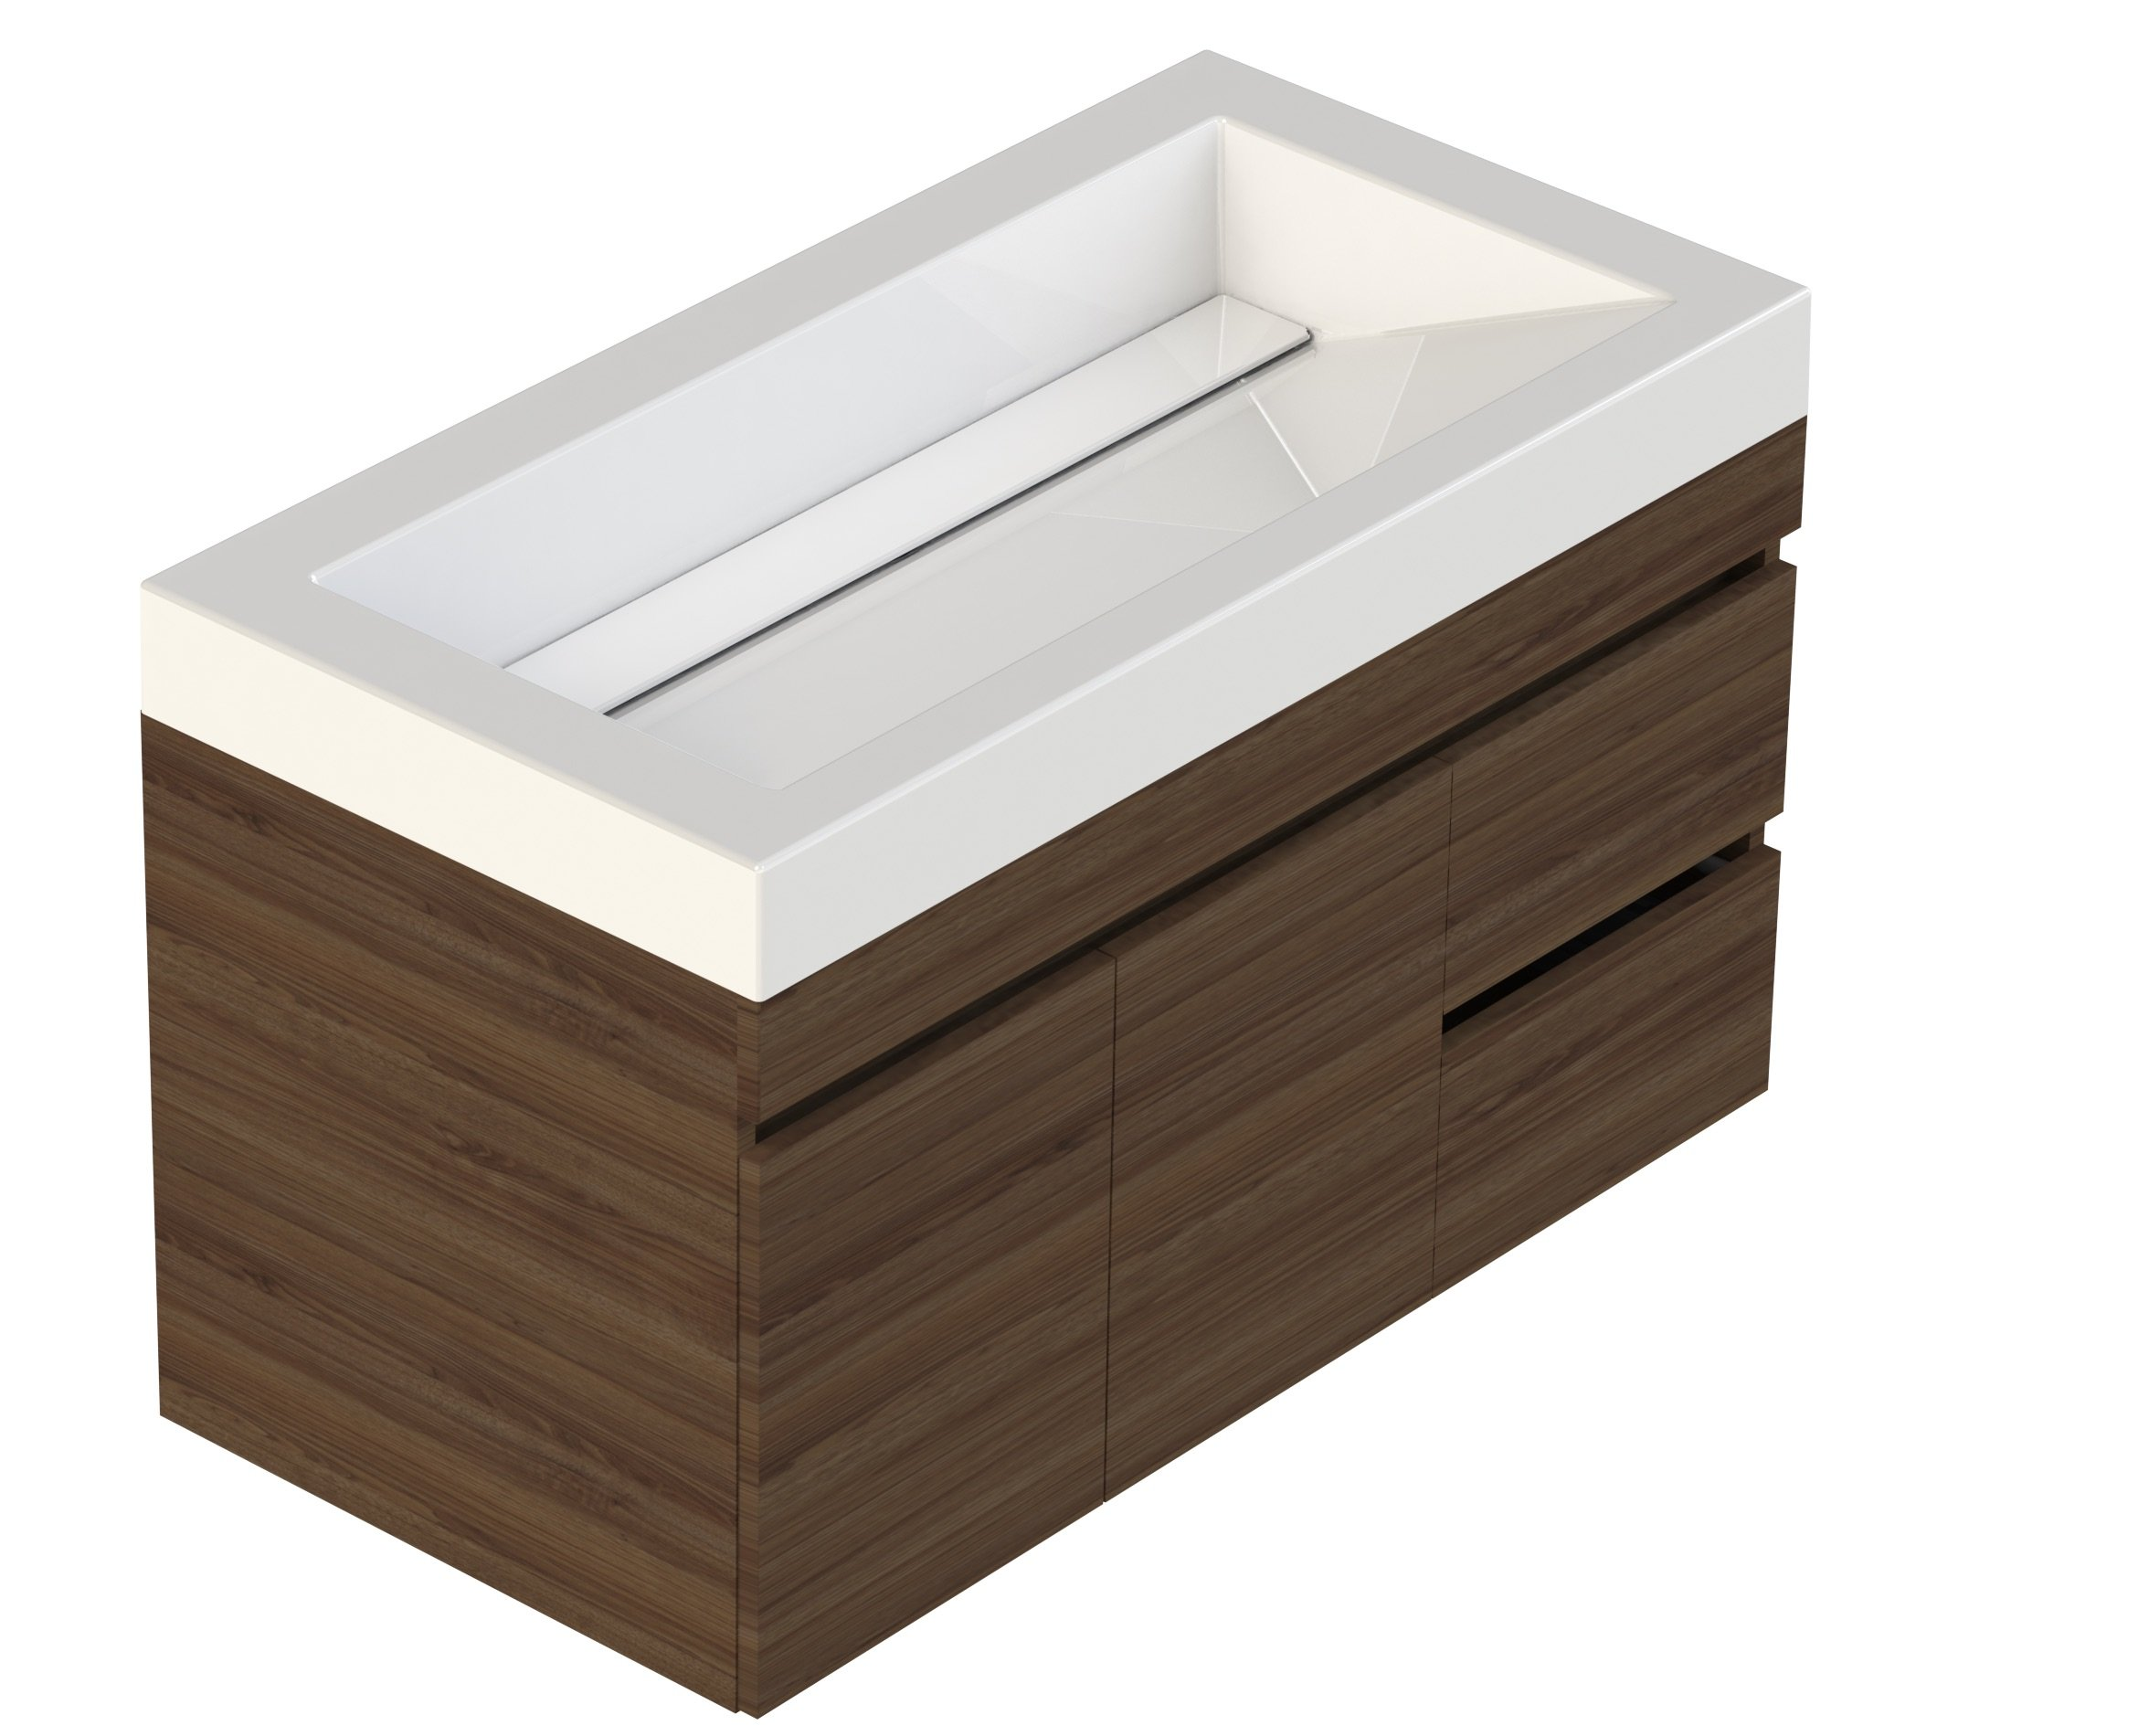 "Lift Bridge Kitchen & Bath 37VGENWAL Viteli Cabinet Vanity with Top, 37"", Walnut - Assembled Dimensions are 37.0 in. W x 19.0 in. D x 24.0 in. H Solid 5.0 in. Thick cultured marble vanity top with an integrated rectangular sink Drill-out faucet guides on the underside of the vanity top can easily accommodate a 4 in. Or 8 in. Faucet (sold separately) - bathroom-vanities, bathroom-fixtures-hardware, bathroom - 81vb1sNjM8L -"